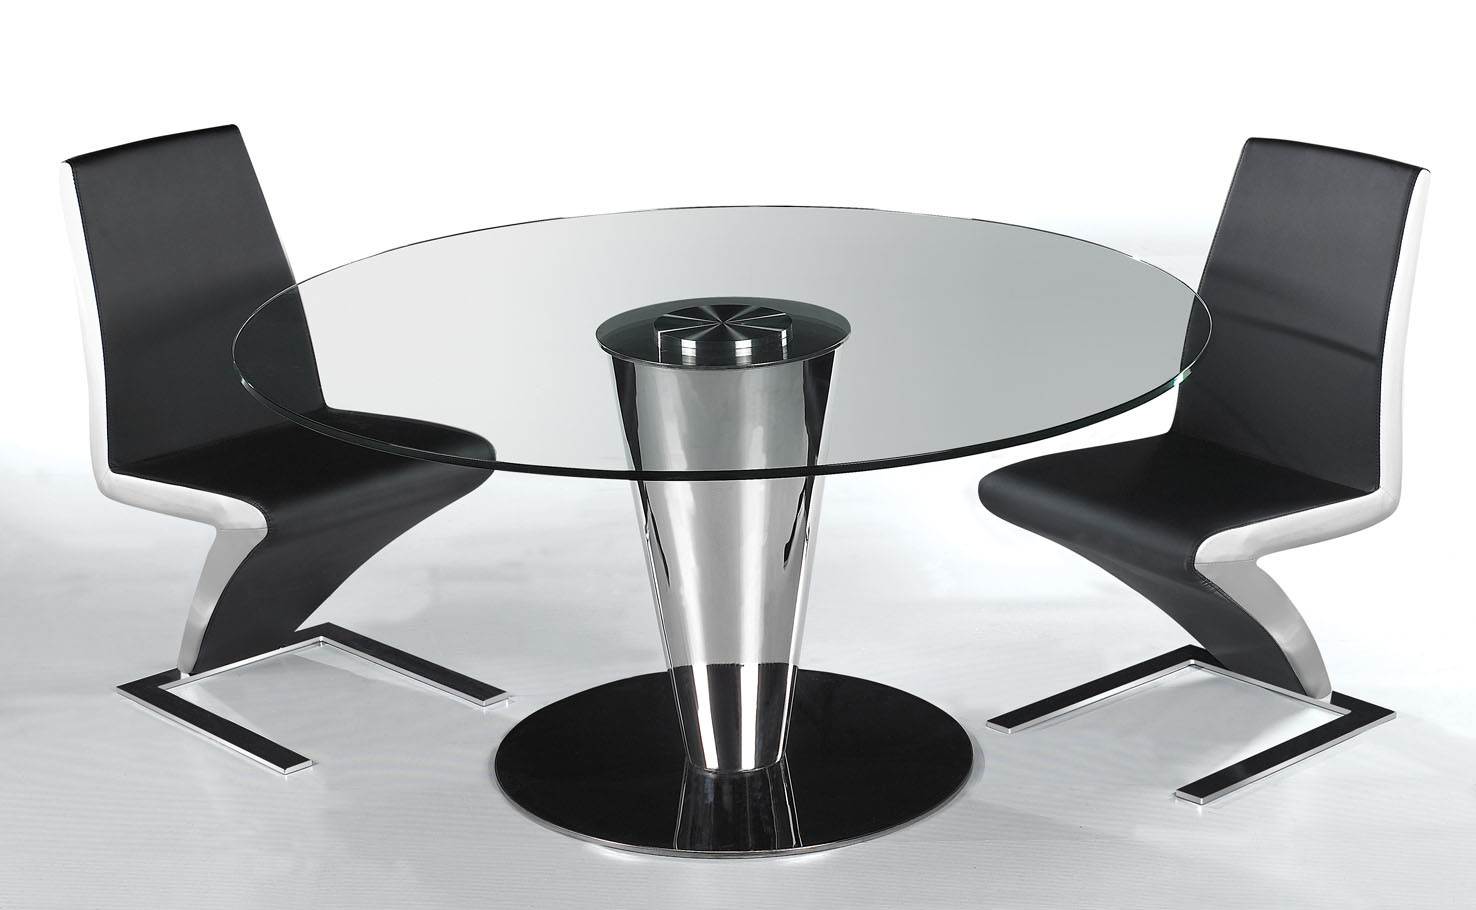 Top Glass Dining Table and Chairs 1476 x 910 · 133 kB · jpeg